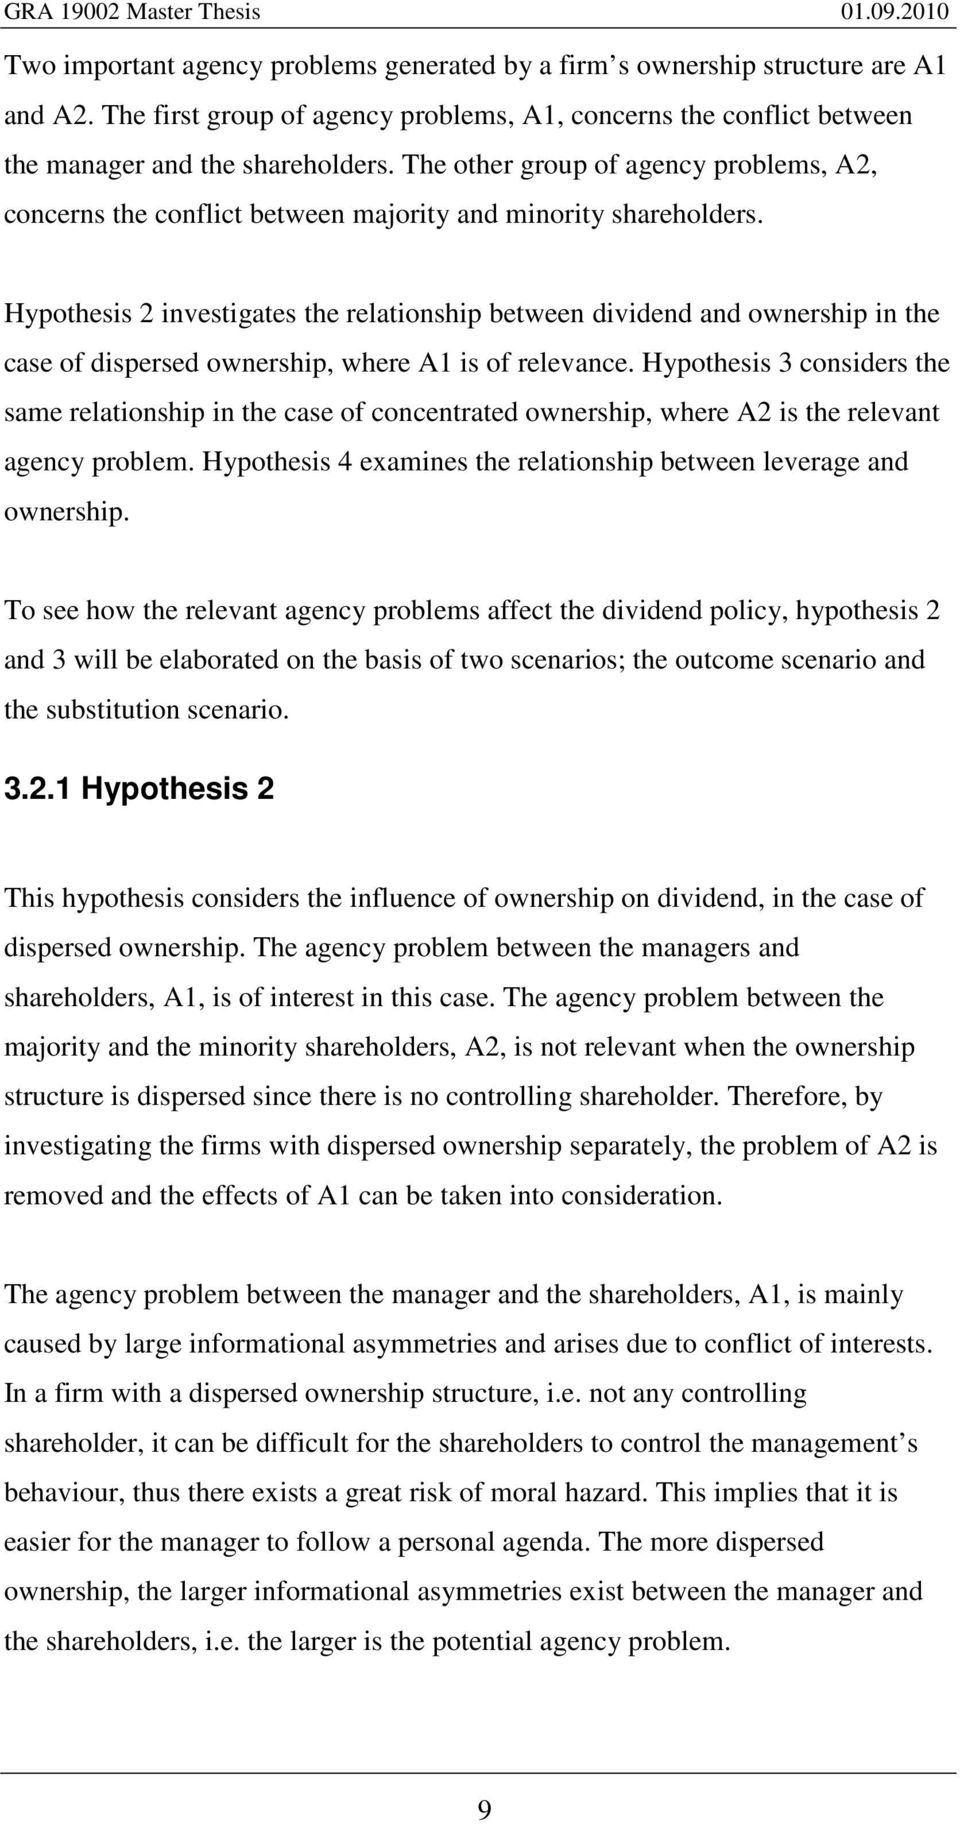 Hypothesis 2 investigates the relationship between dividend and ownership in the case of dispersed ownership, where A1 is of relevance.